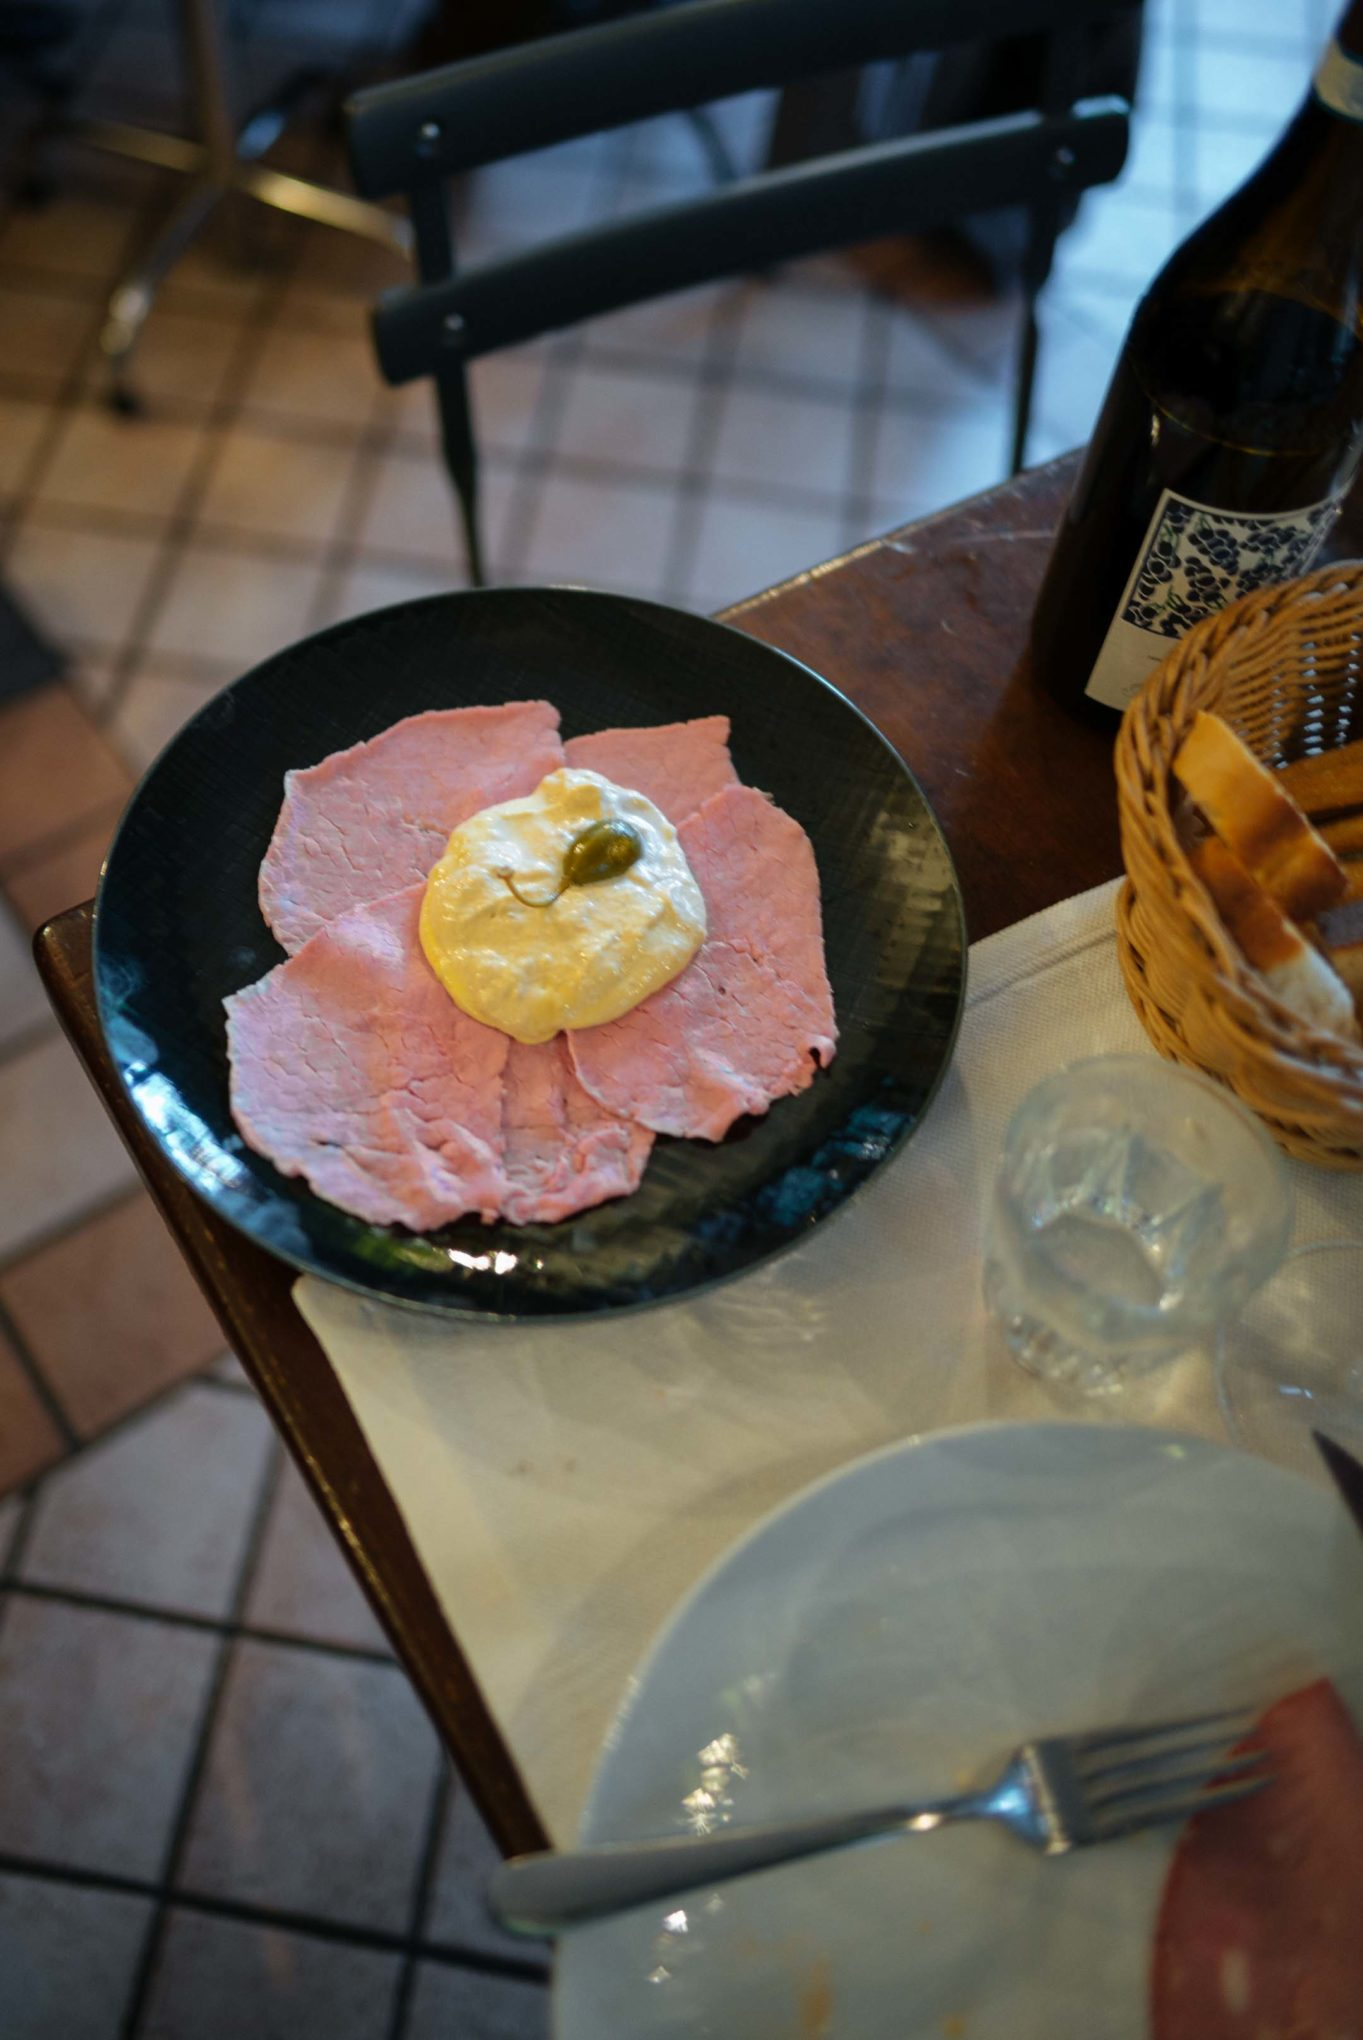 Go to Vinoteca Centro Storico in Serralunga for good food and amazing local wines and champagnes - try the Vitello tonnato